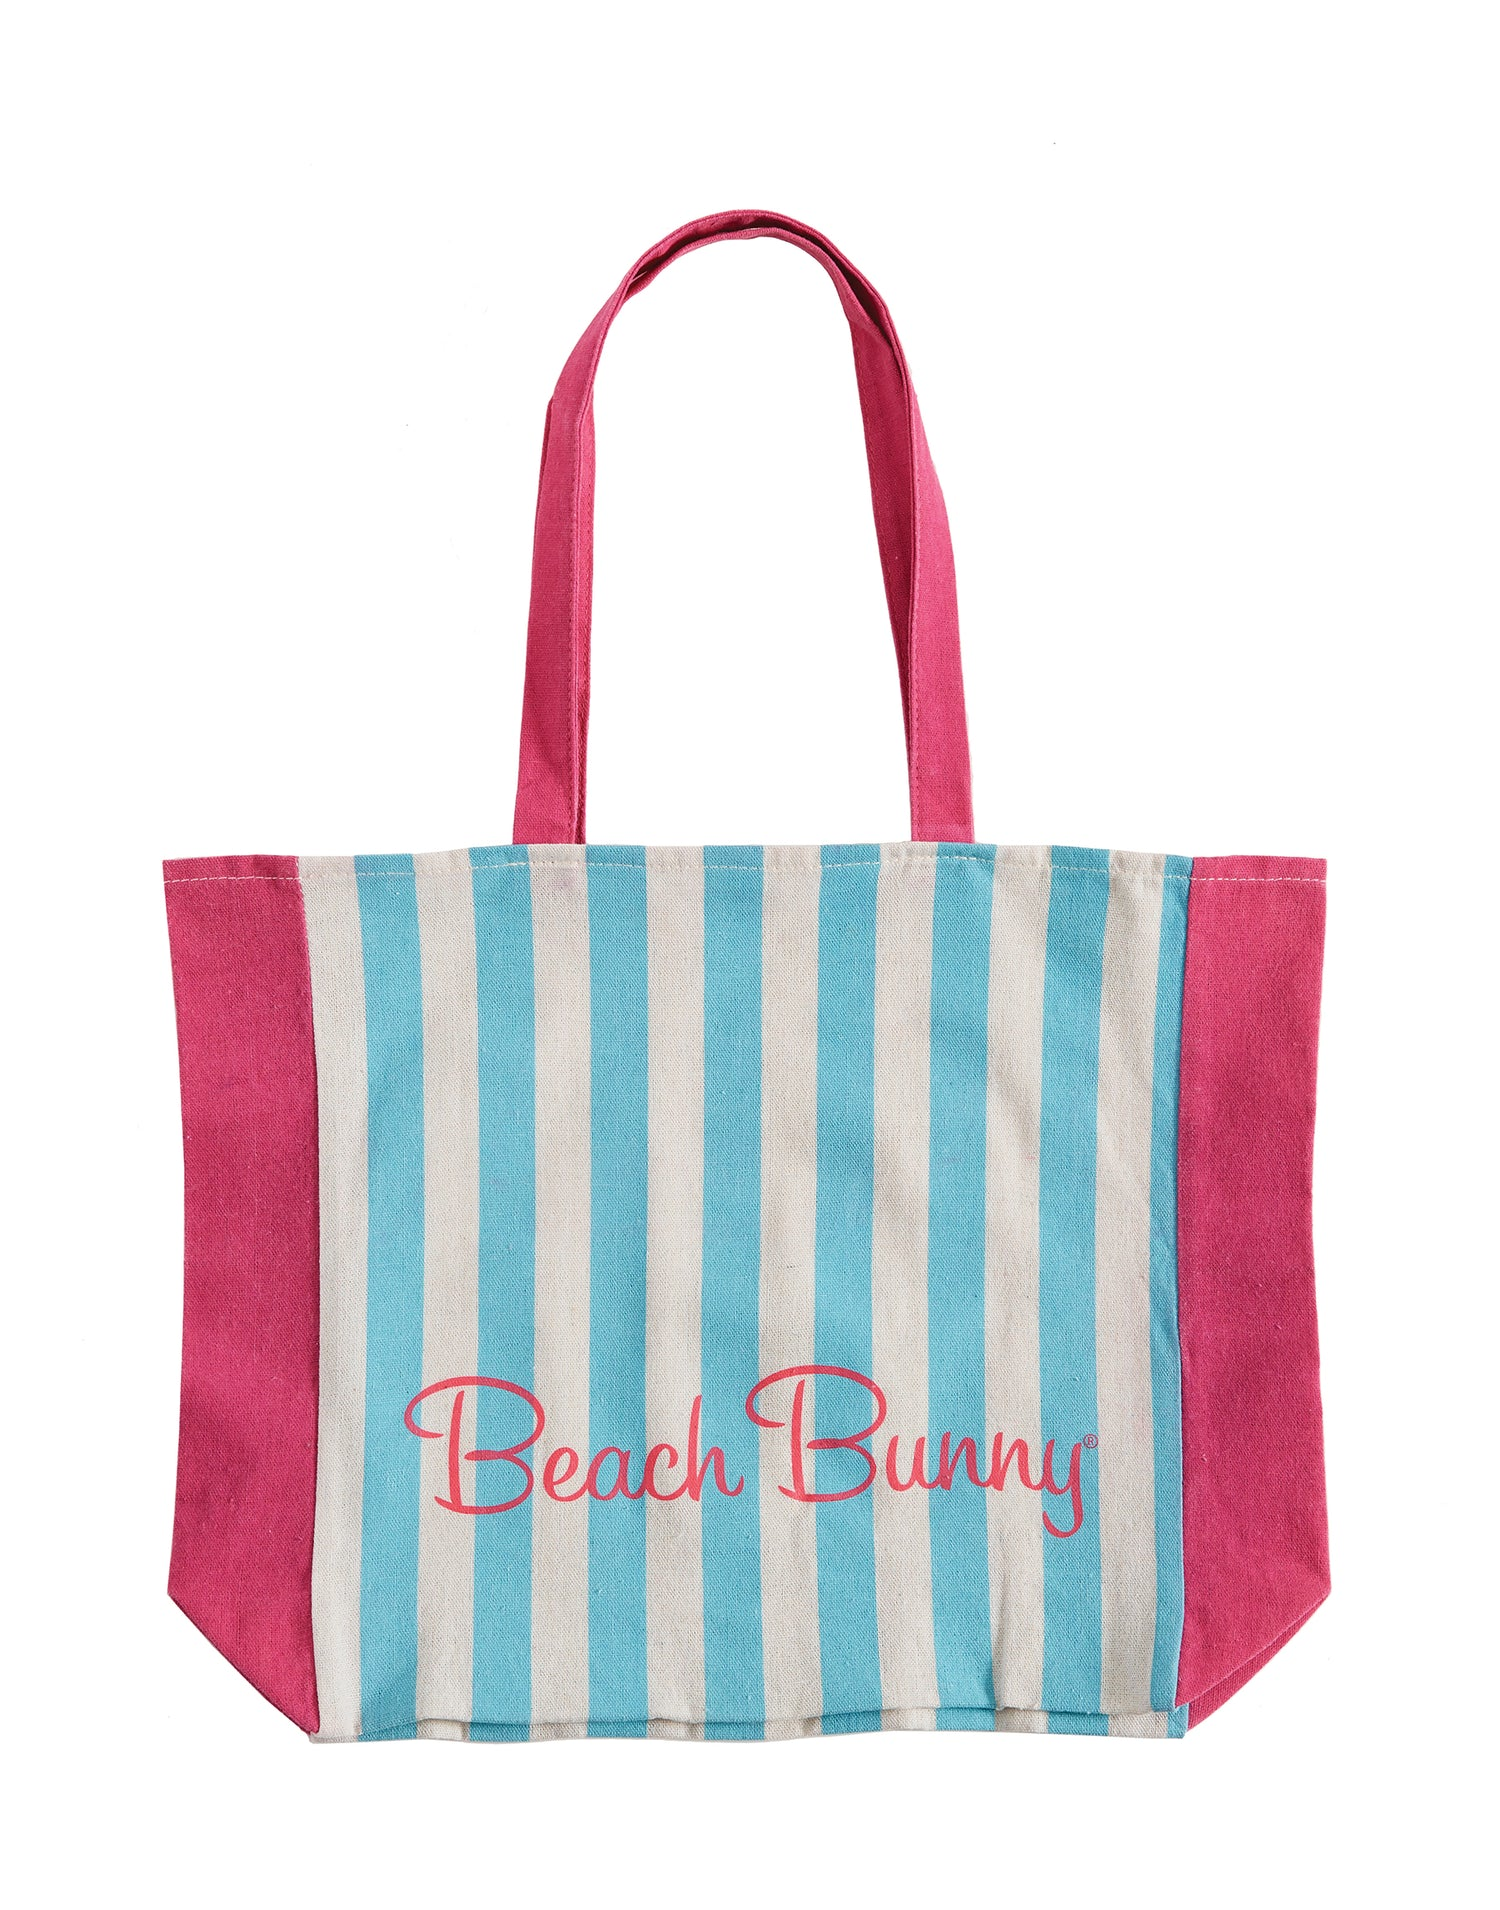 Beach Bunny Tote with Blue and Pink Stripes